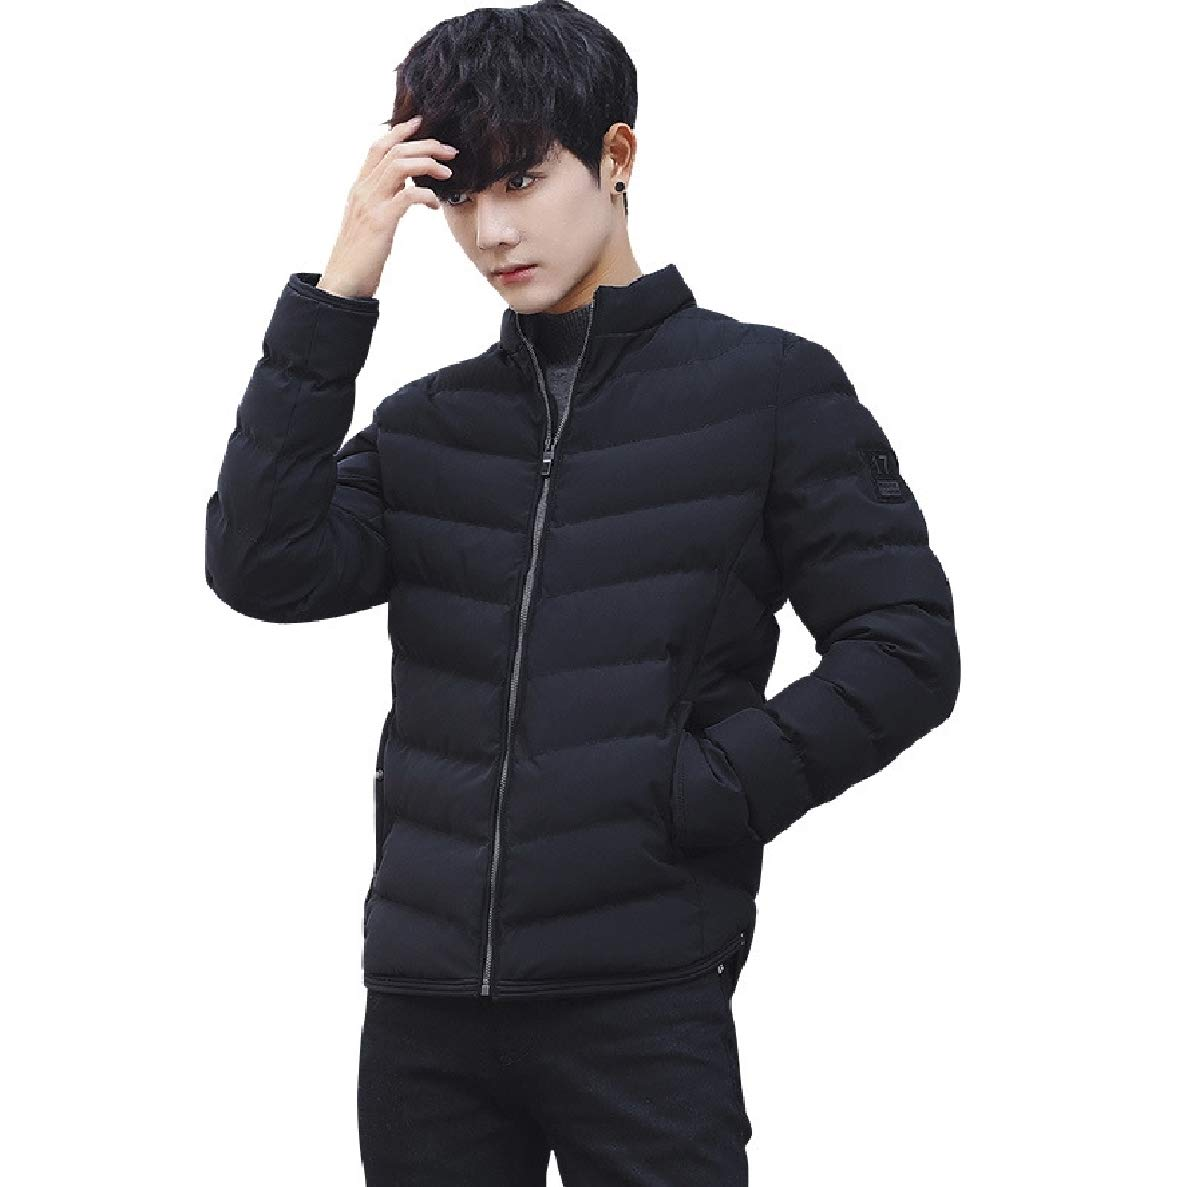 Winwinus Mens Stand Up Collar Short Solid Thickening Cotton Parka Jacket Coat Outwear